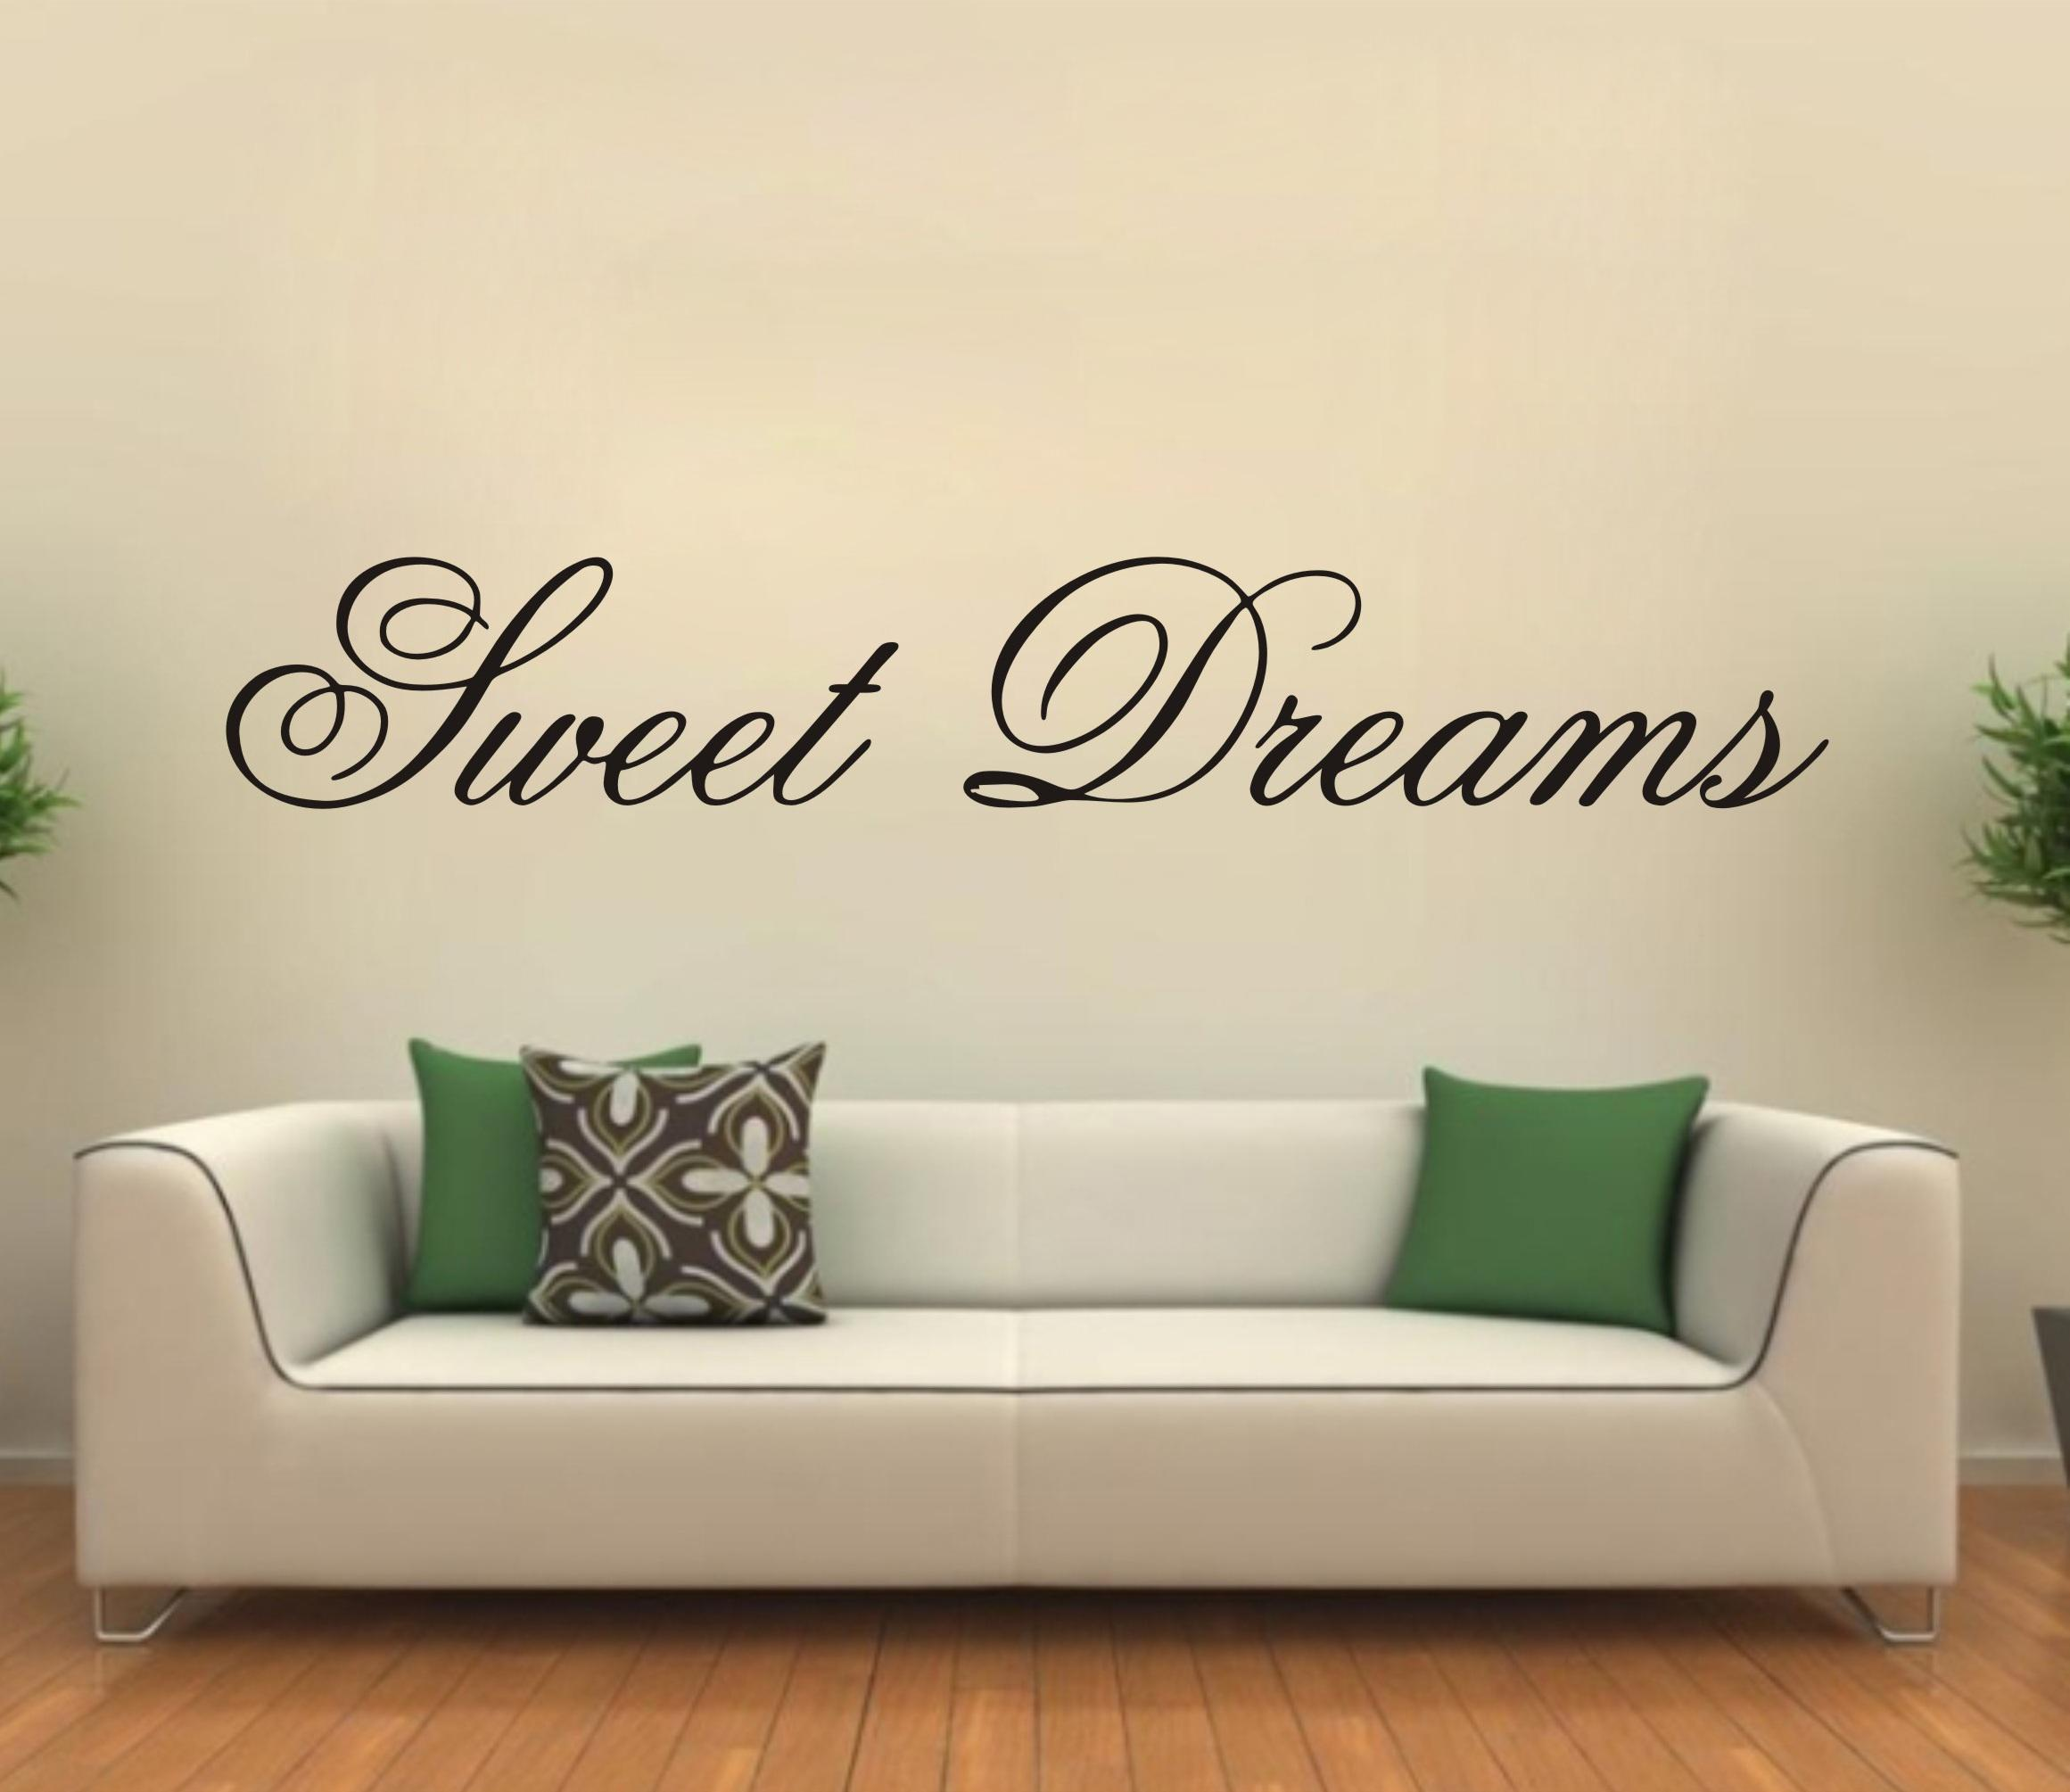 Quote Wall Decals For Living Room : Modern wall sticker sweet dreams vinyl art mural living